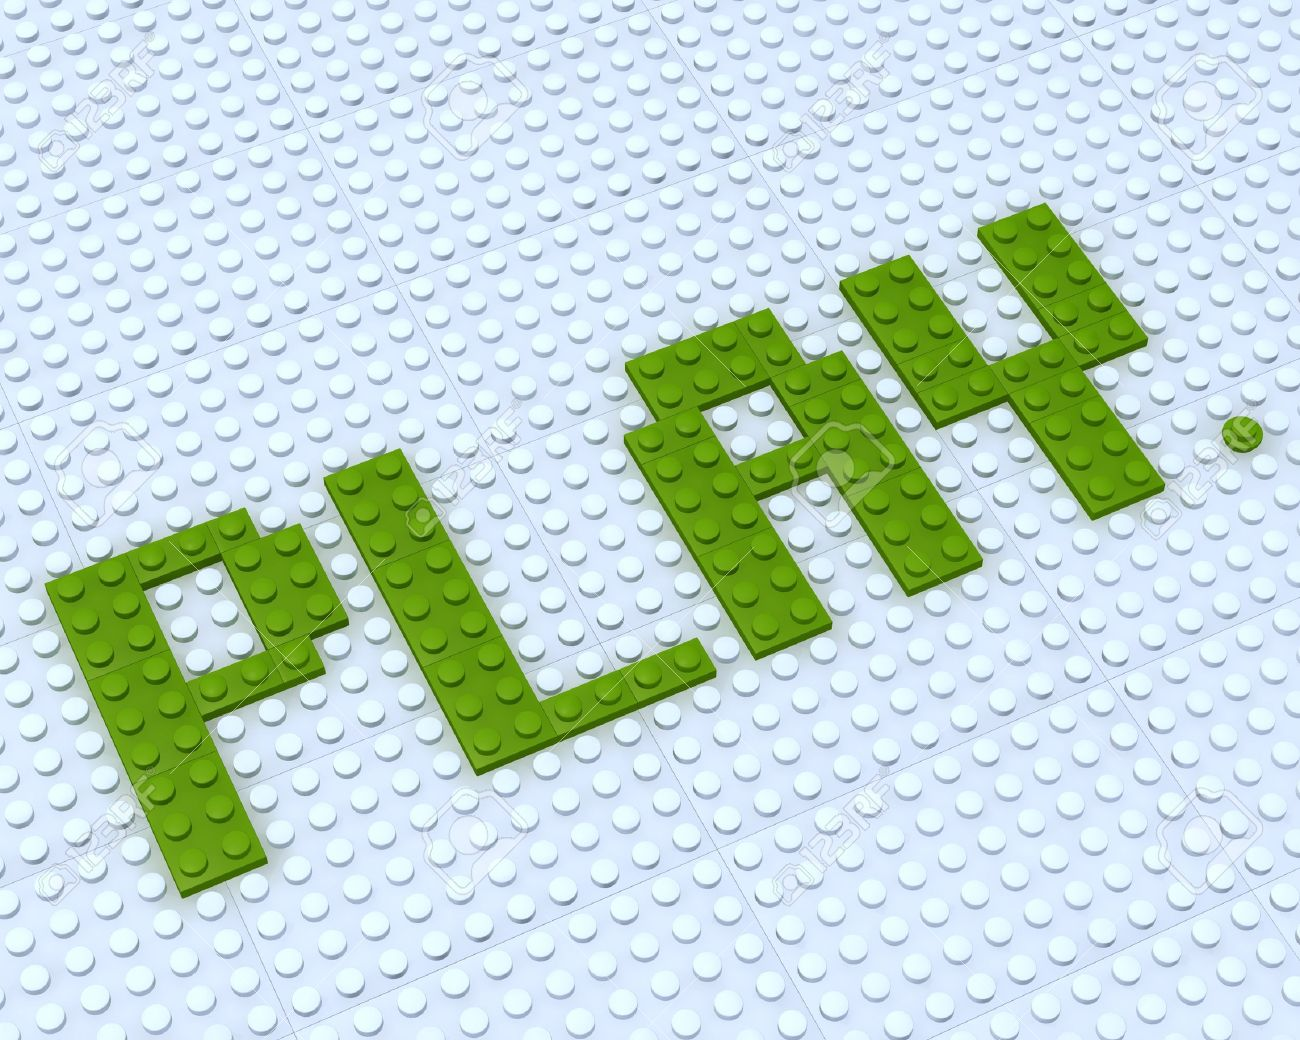 Constructor Lego Play Word On White Background Stock Photo ...